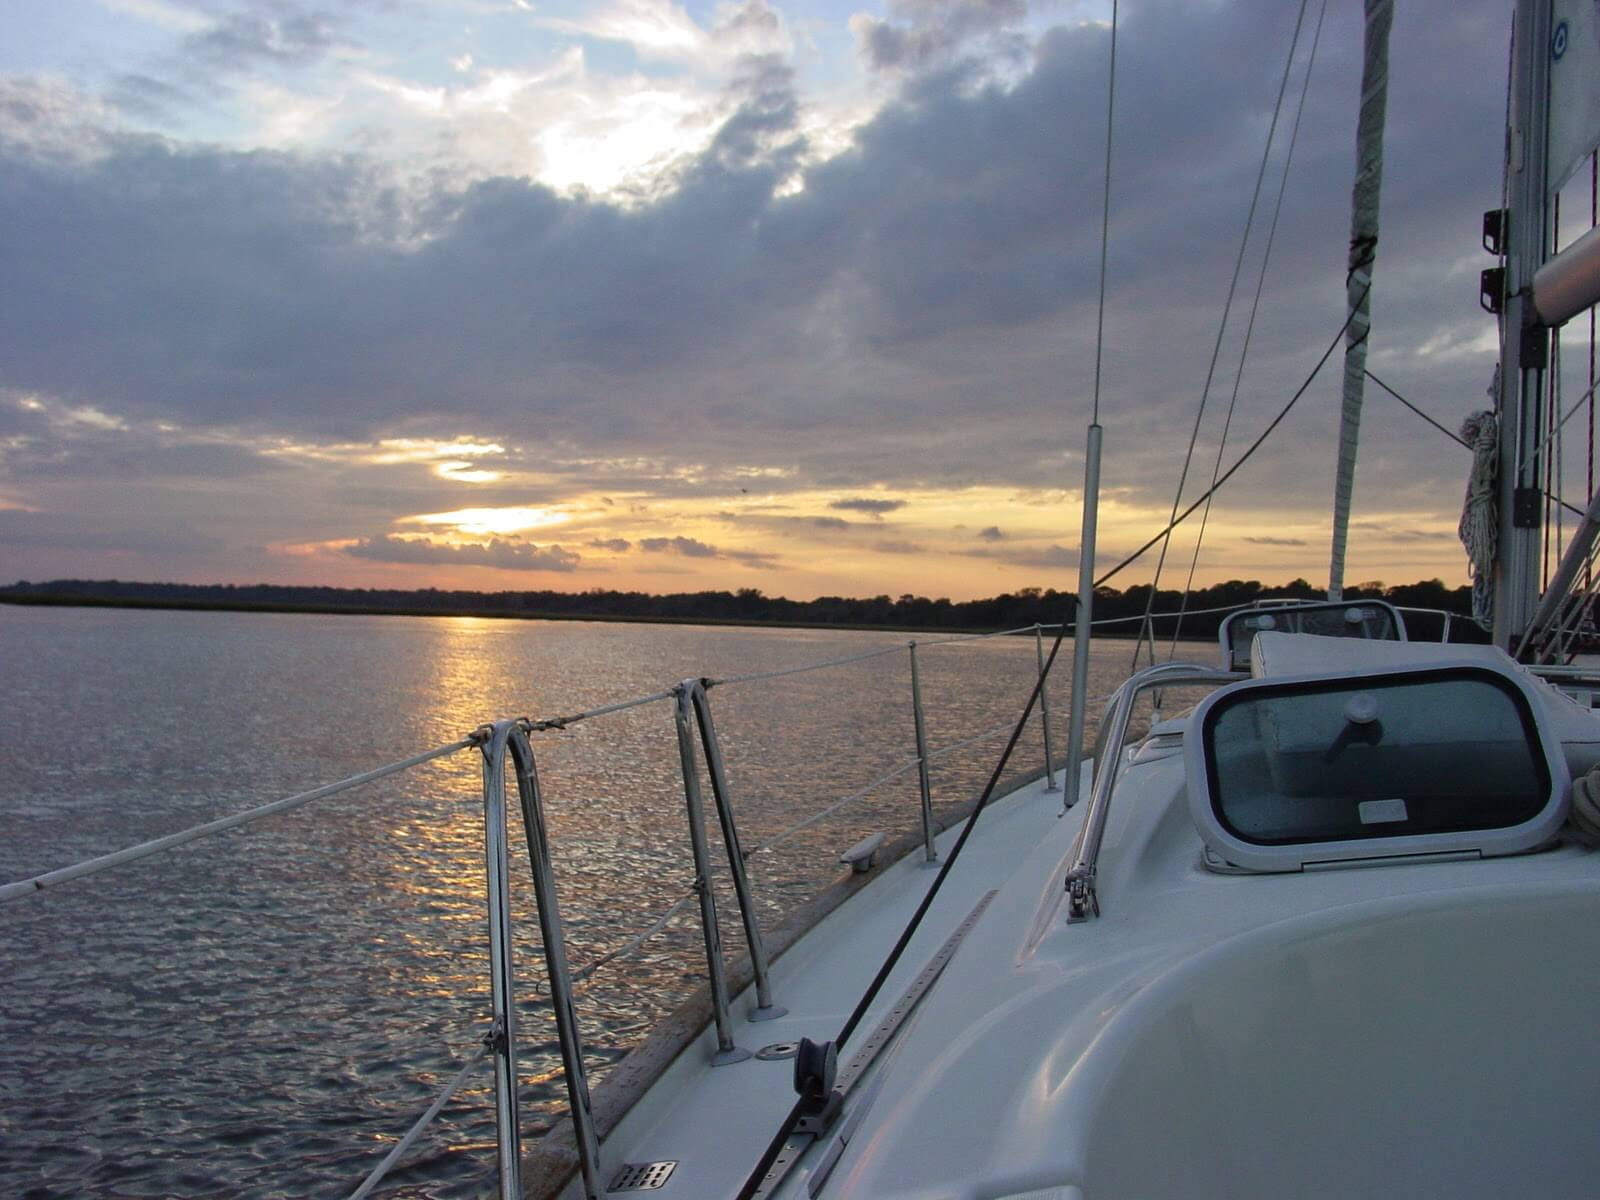 South Carolina sunset taken portside from a Beneteau by Ocean Sailing Academy